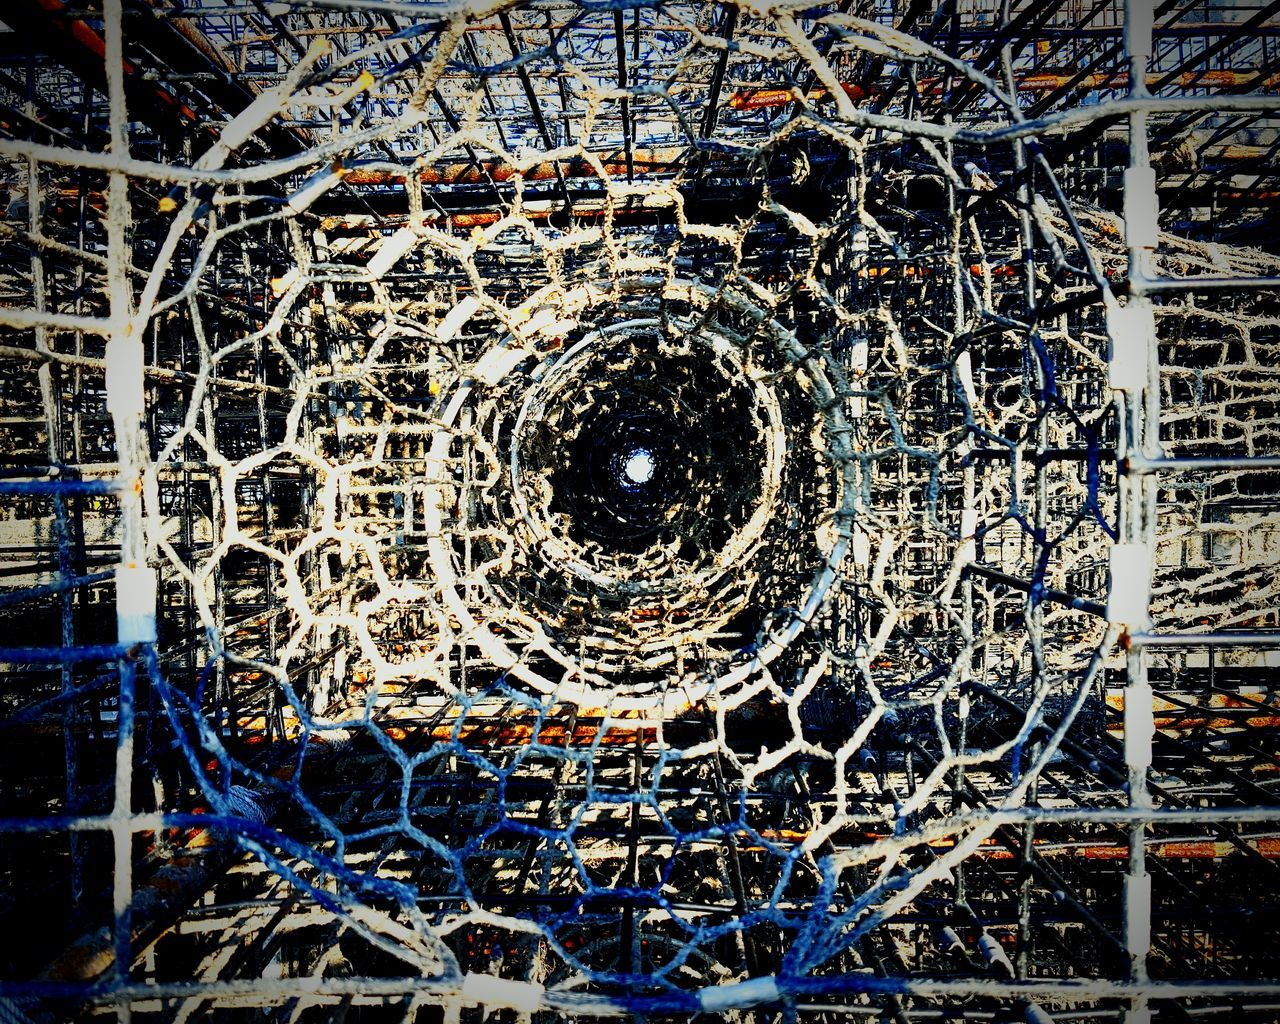 Looking Through The Lobster Pots Maritime Fishery  Fishing Industry Outdoors Outdoor Photography Pots Lobster Pots IShootFromMyWheelchair My Perspective Perspective Eyeem Market Eyeemphotography Eye4photography  EyeEm Port Of Los Angeles Ports O' Call Close-up